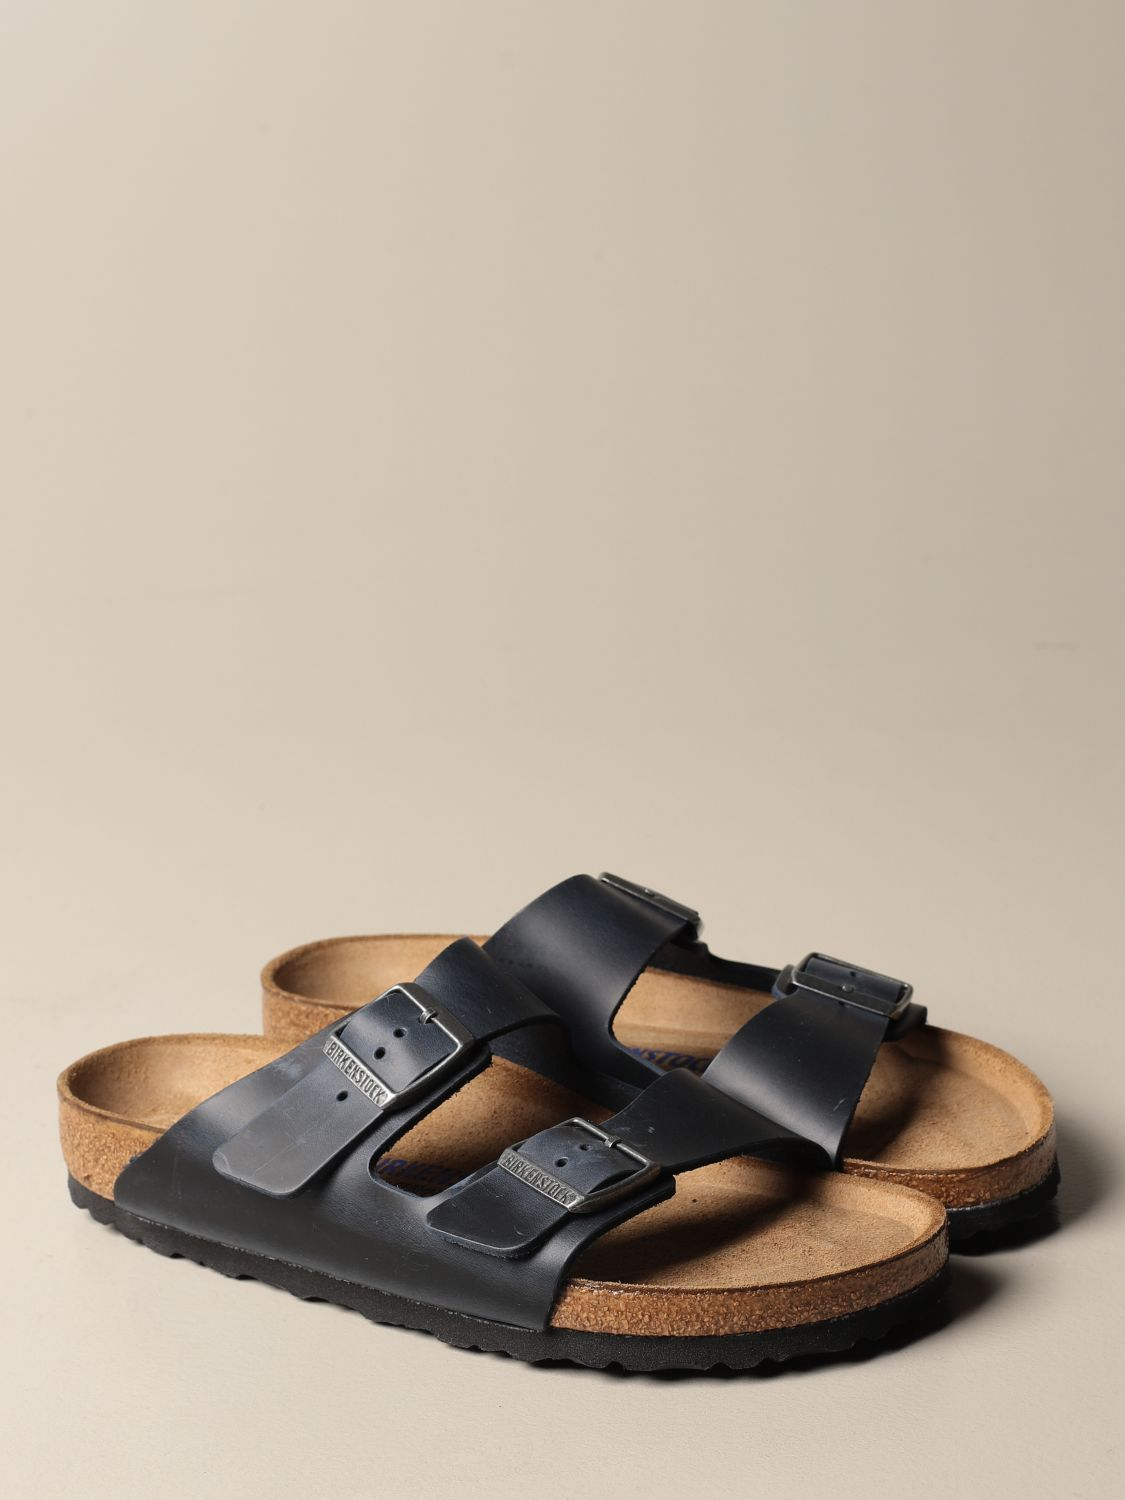 Sandals Birkenstock: Shoes men Birkenstock navy 2